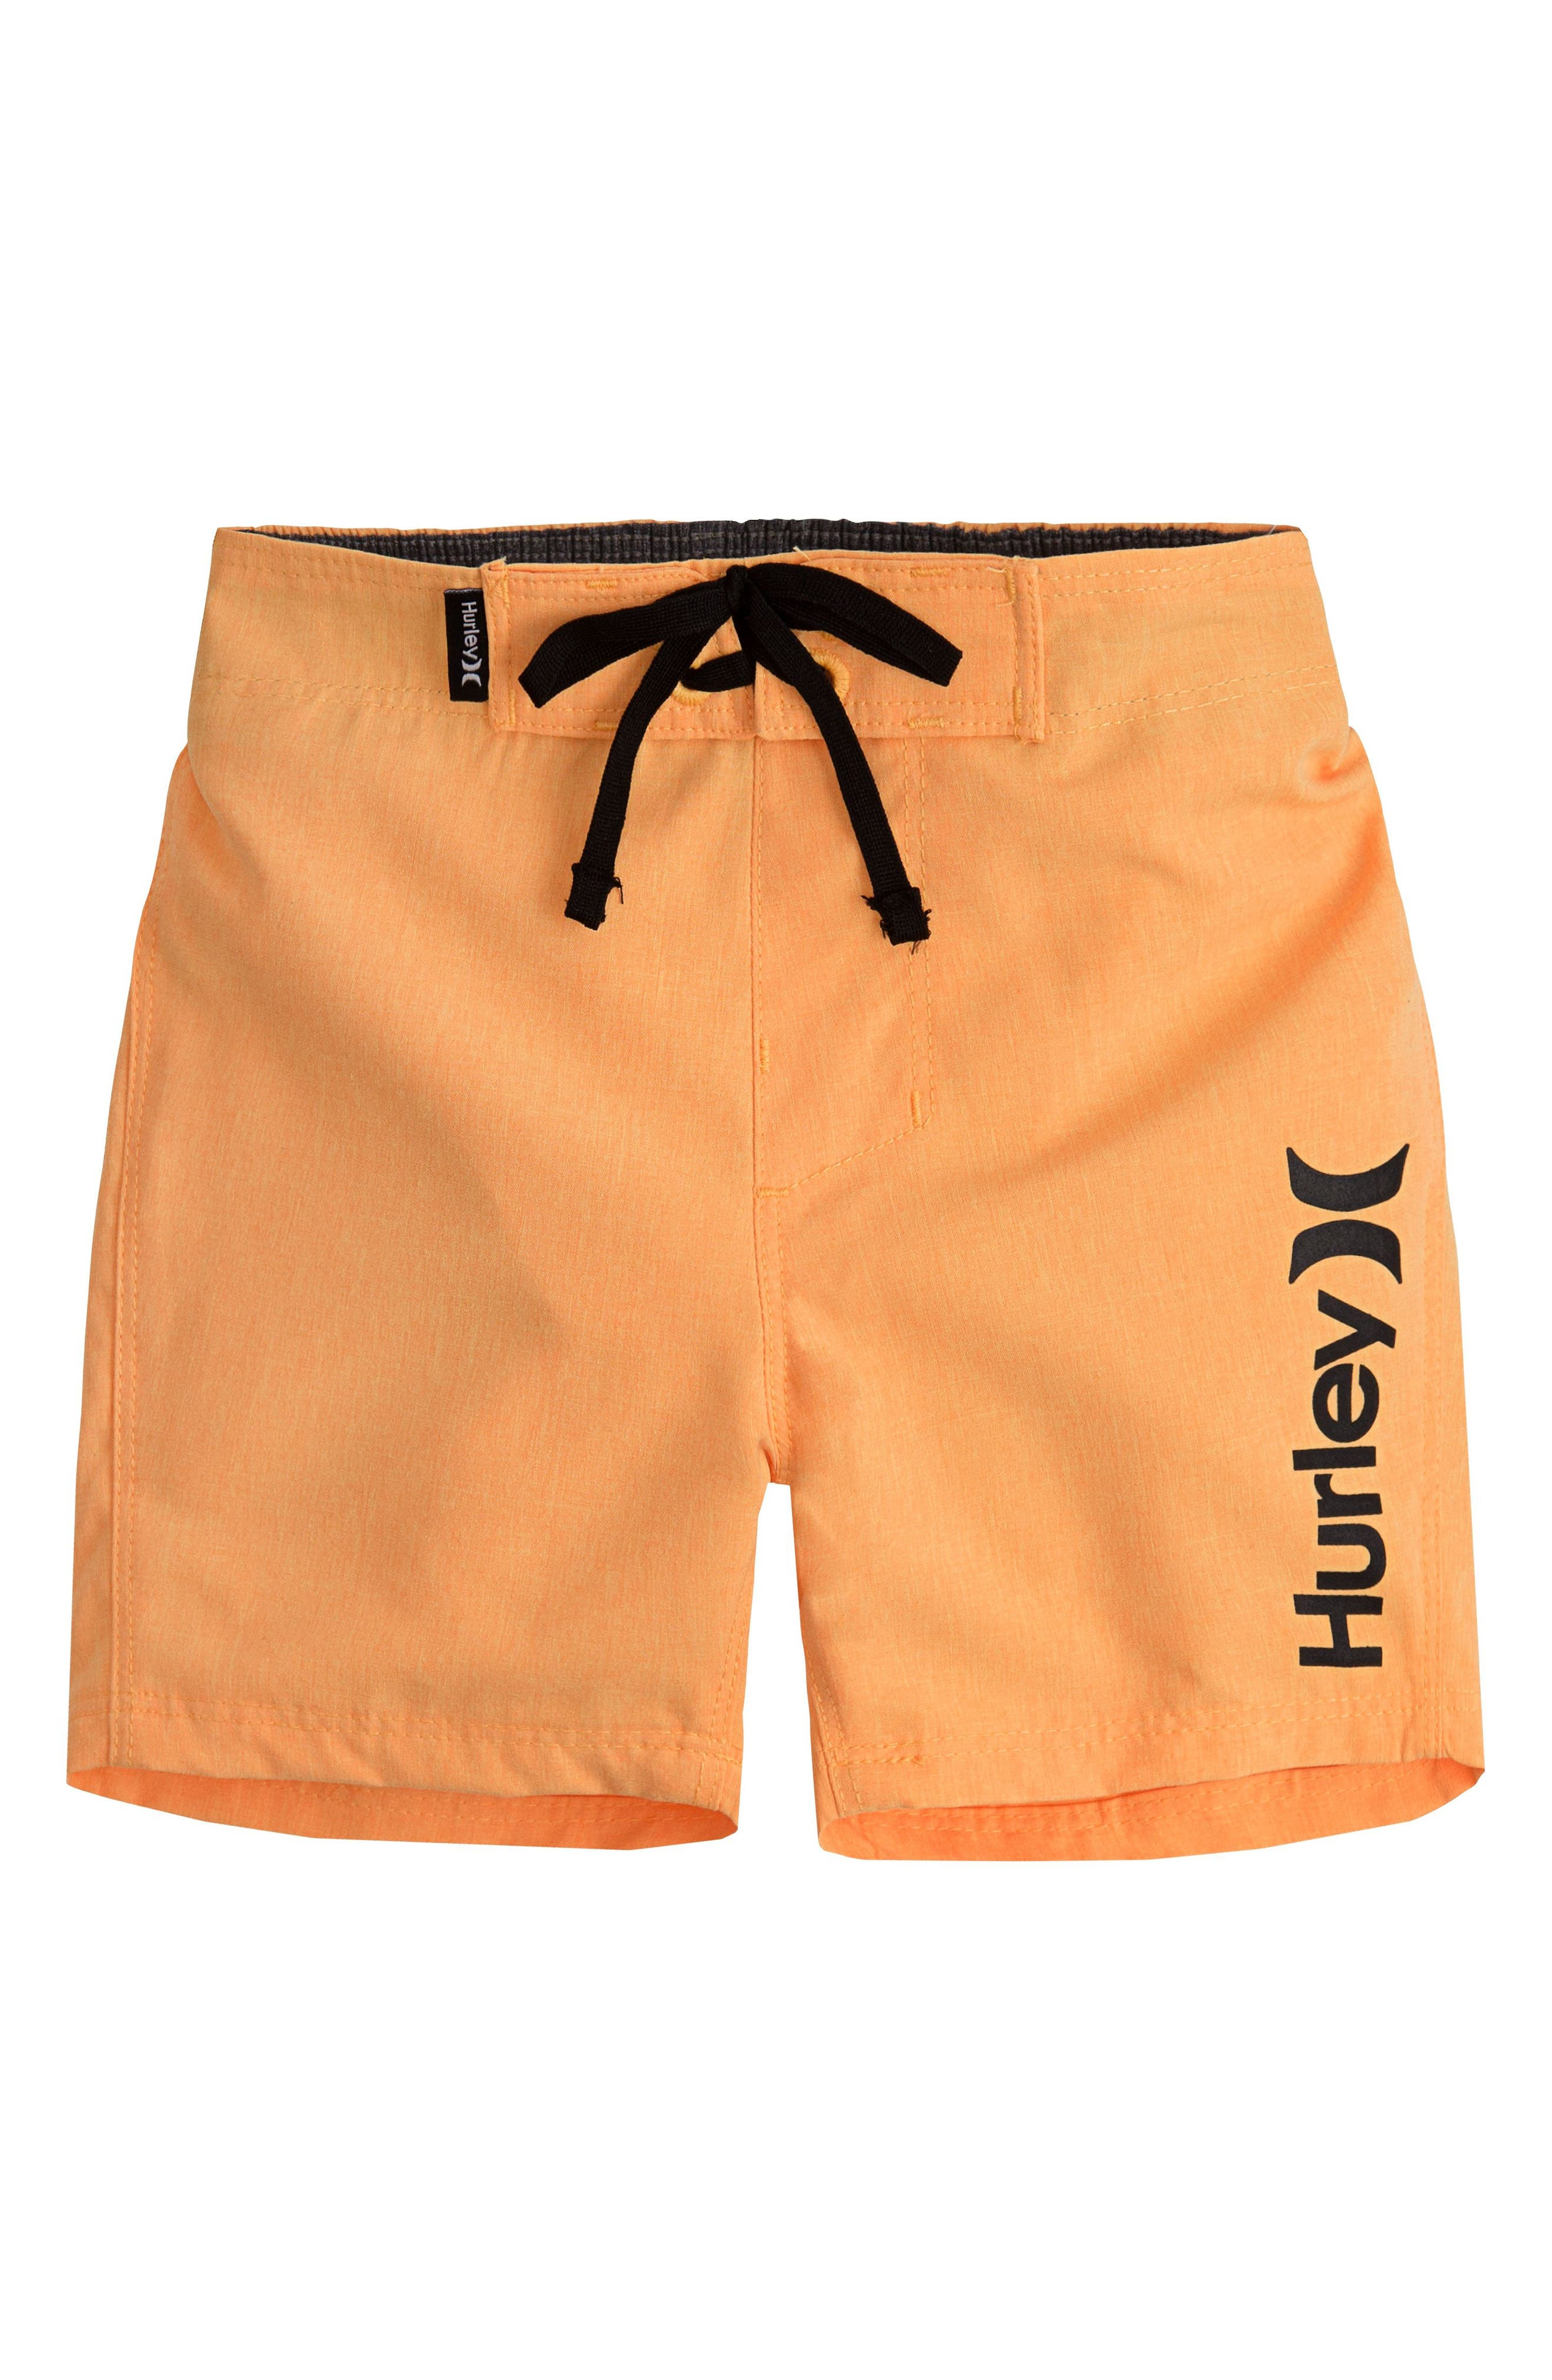 One and Only Dri-FIT Board Shorts,                         Main,                         color, Laser Orange Heather